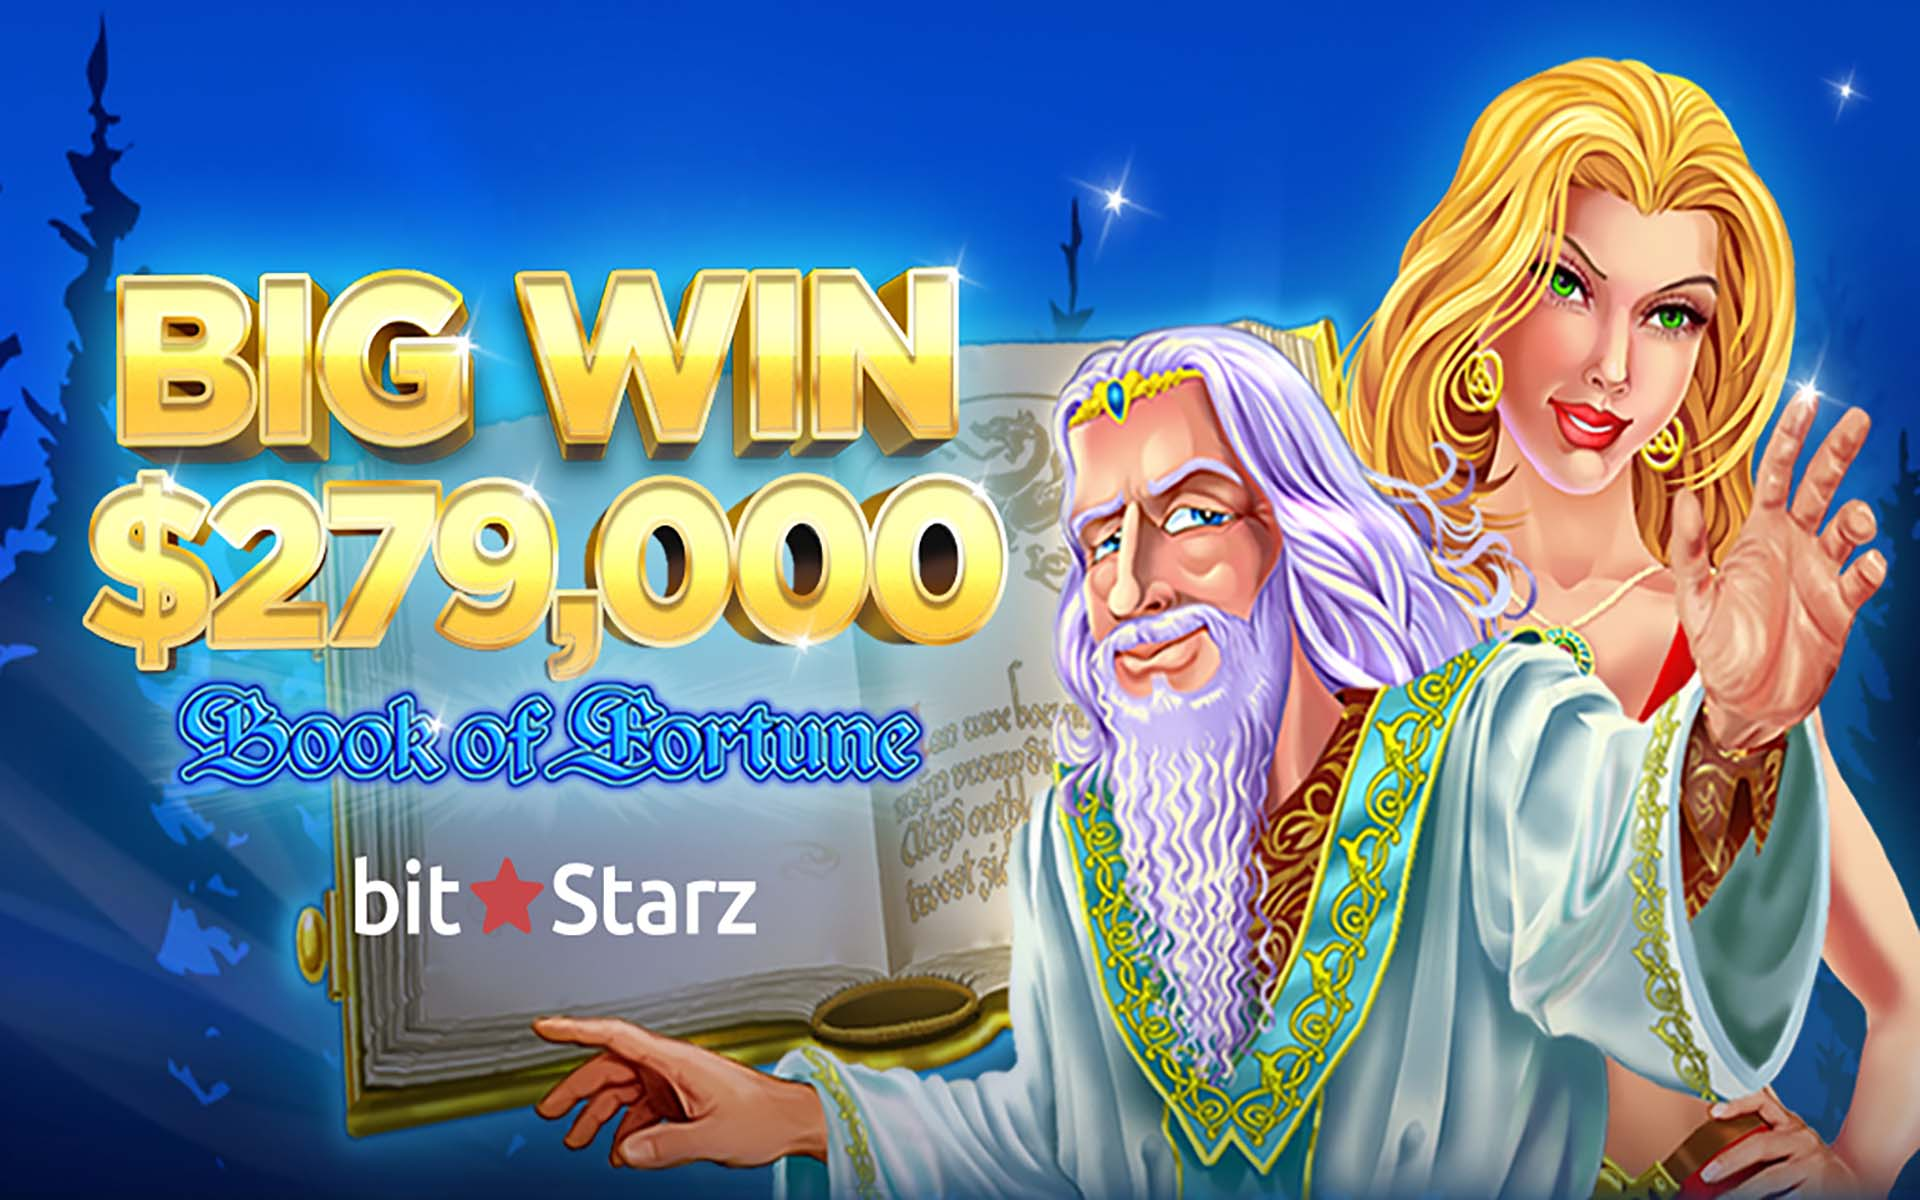 Book of Fortune Leads Player to 19.2 BTC ($279,000) Win at BitStarz!